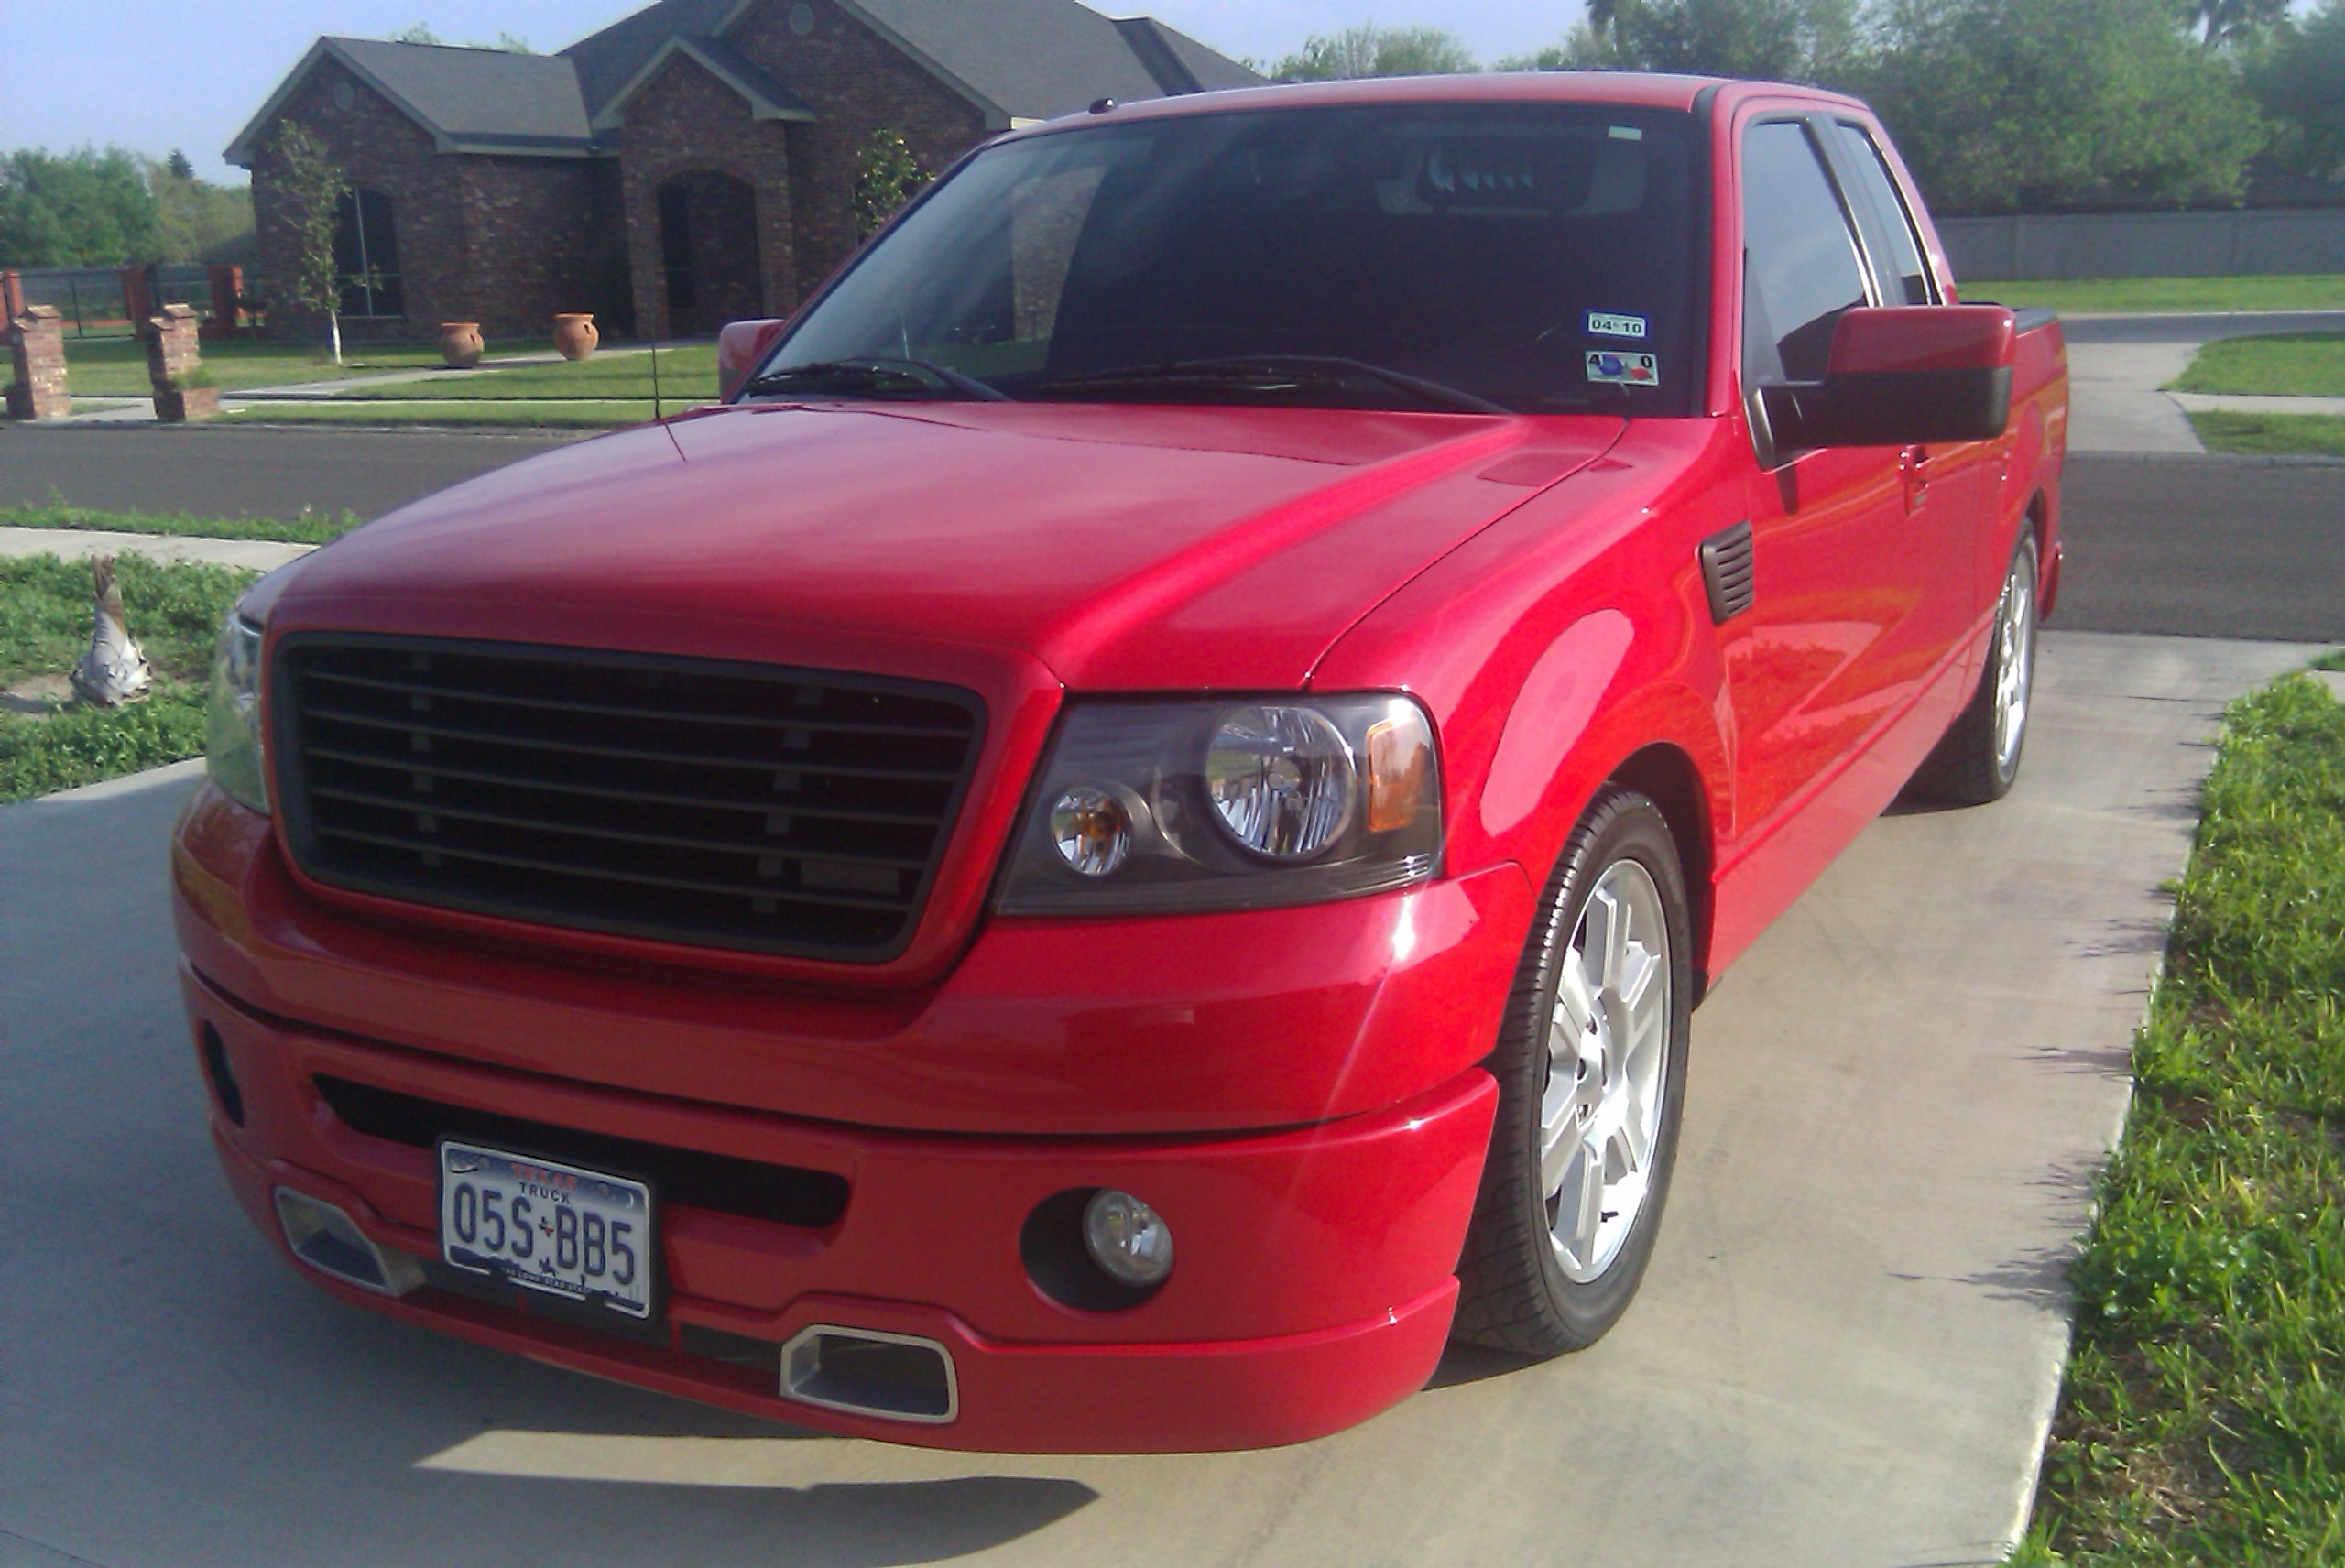 jorge87's 2007 Ford F150 Regular Cab